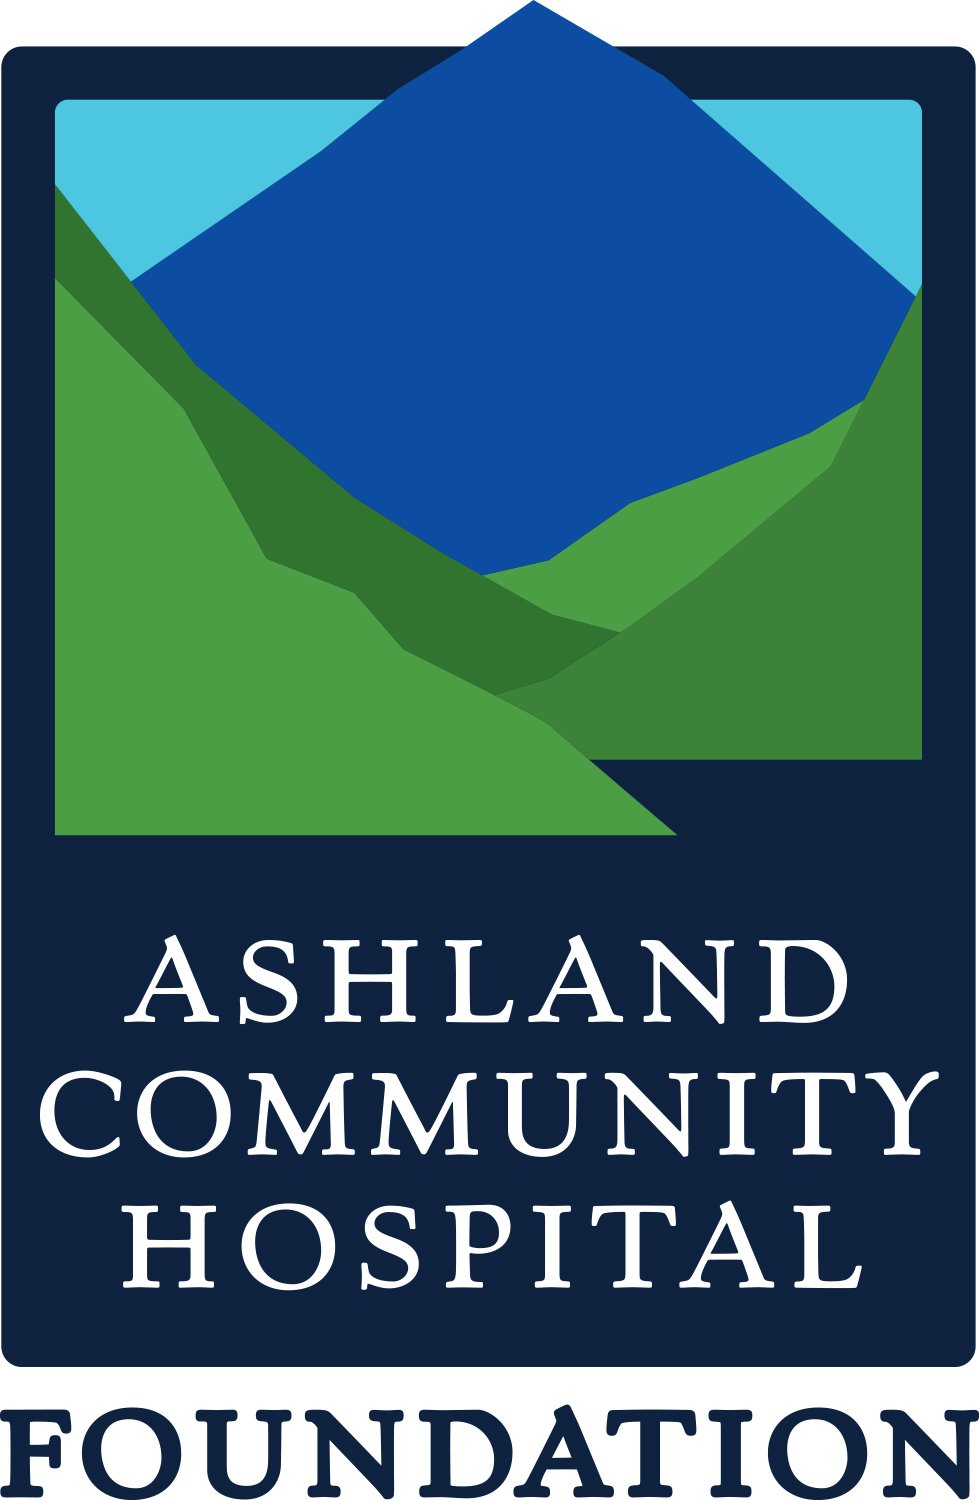 Ashland Community Hospital Foundation